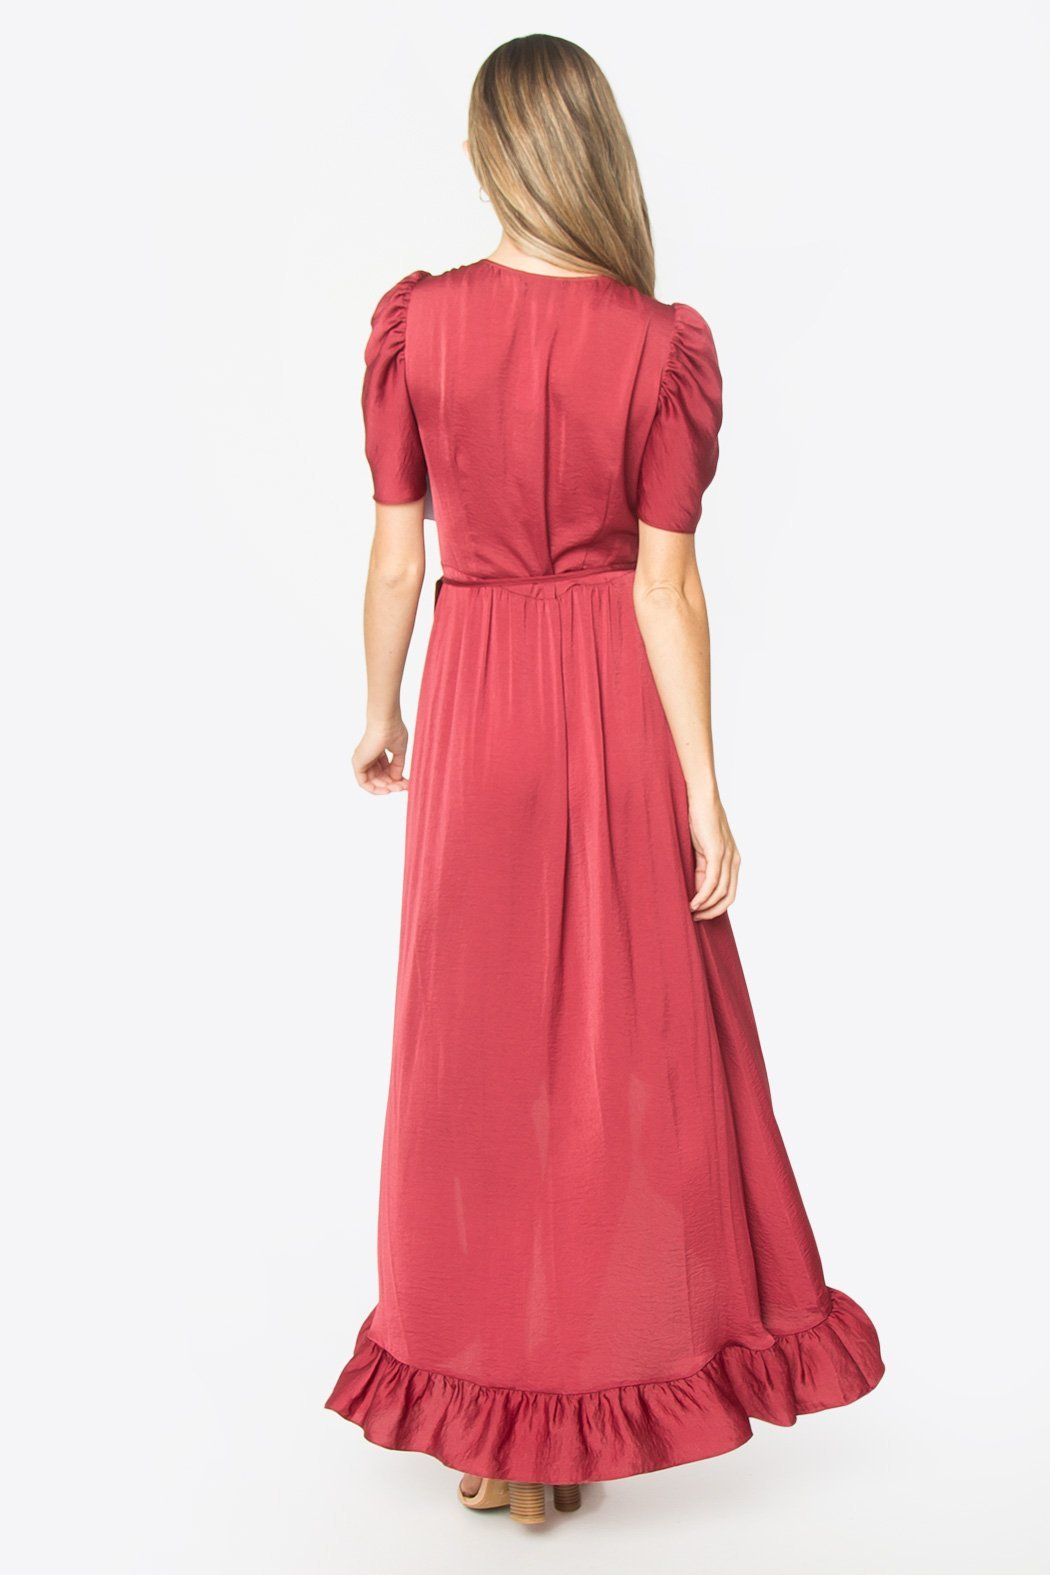 Back view of model wearing a dark coral, light-weight, silky dress which features t-shirt length puff sleeves, a wrap tie closure, v-neckline, and a decorative ruffle along the whole hi-low hem line.